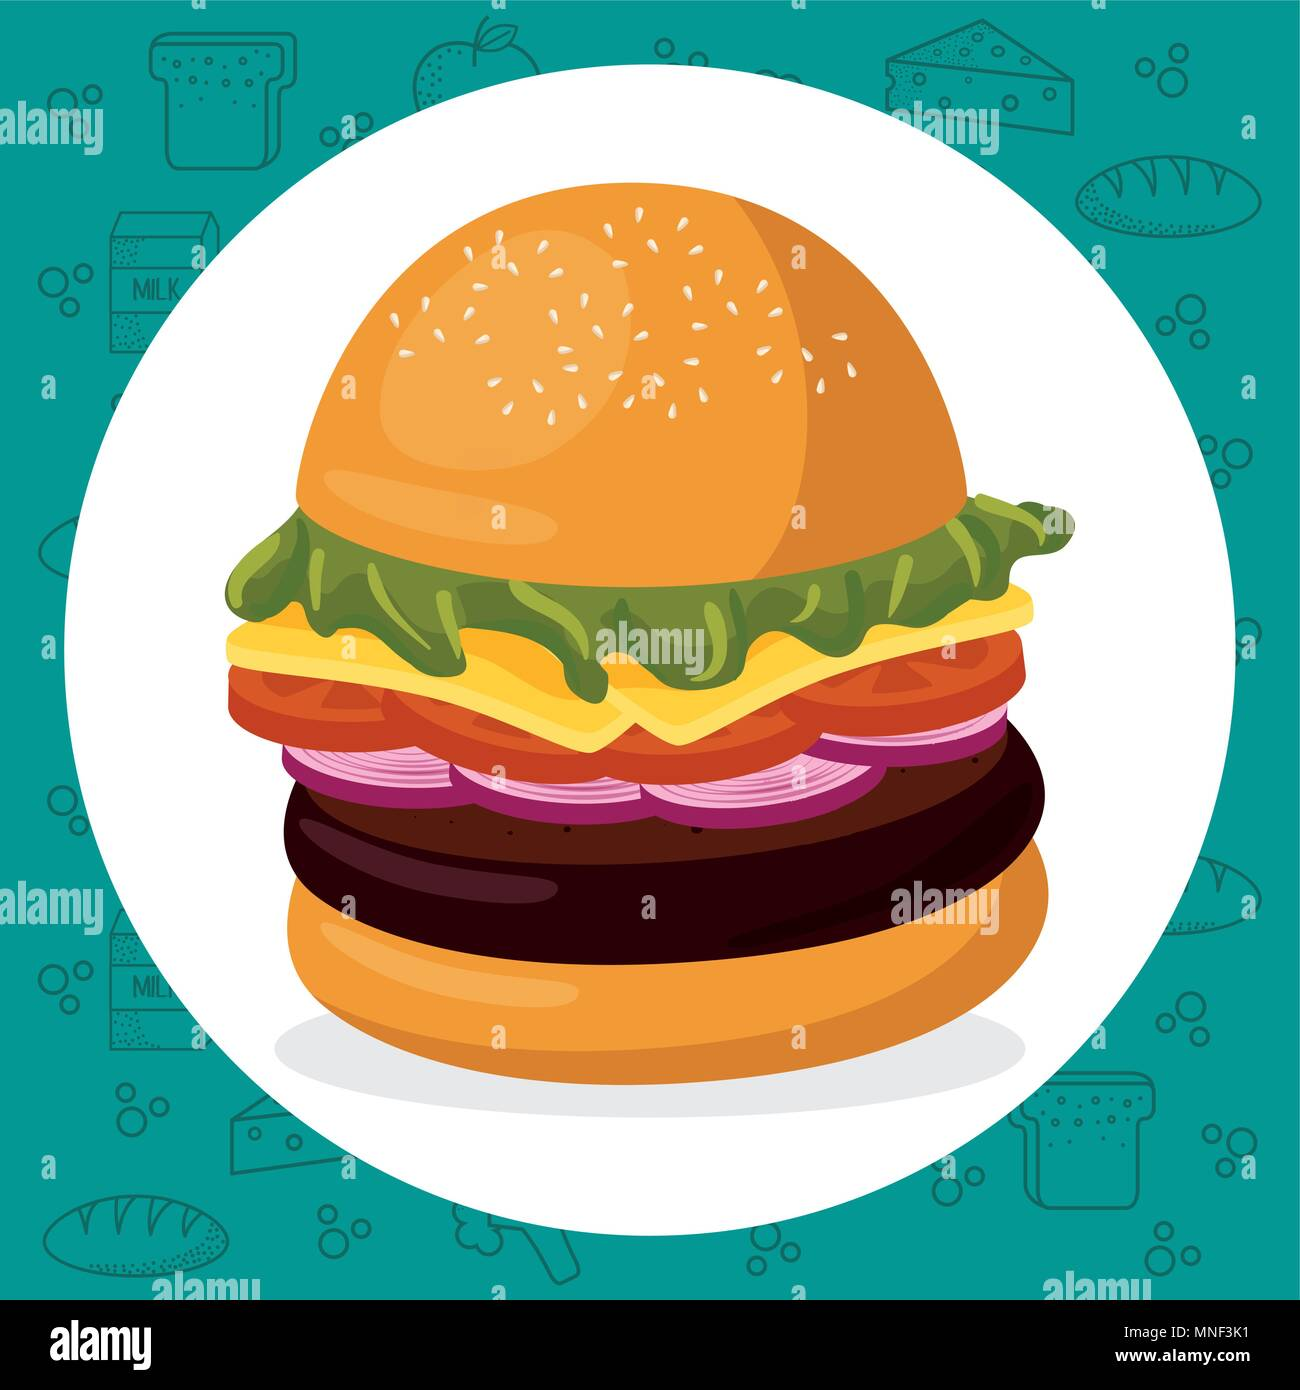 hamburger fast food menu - Stock Vector